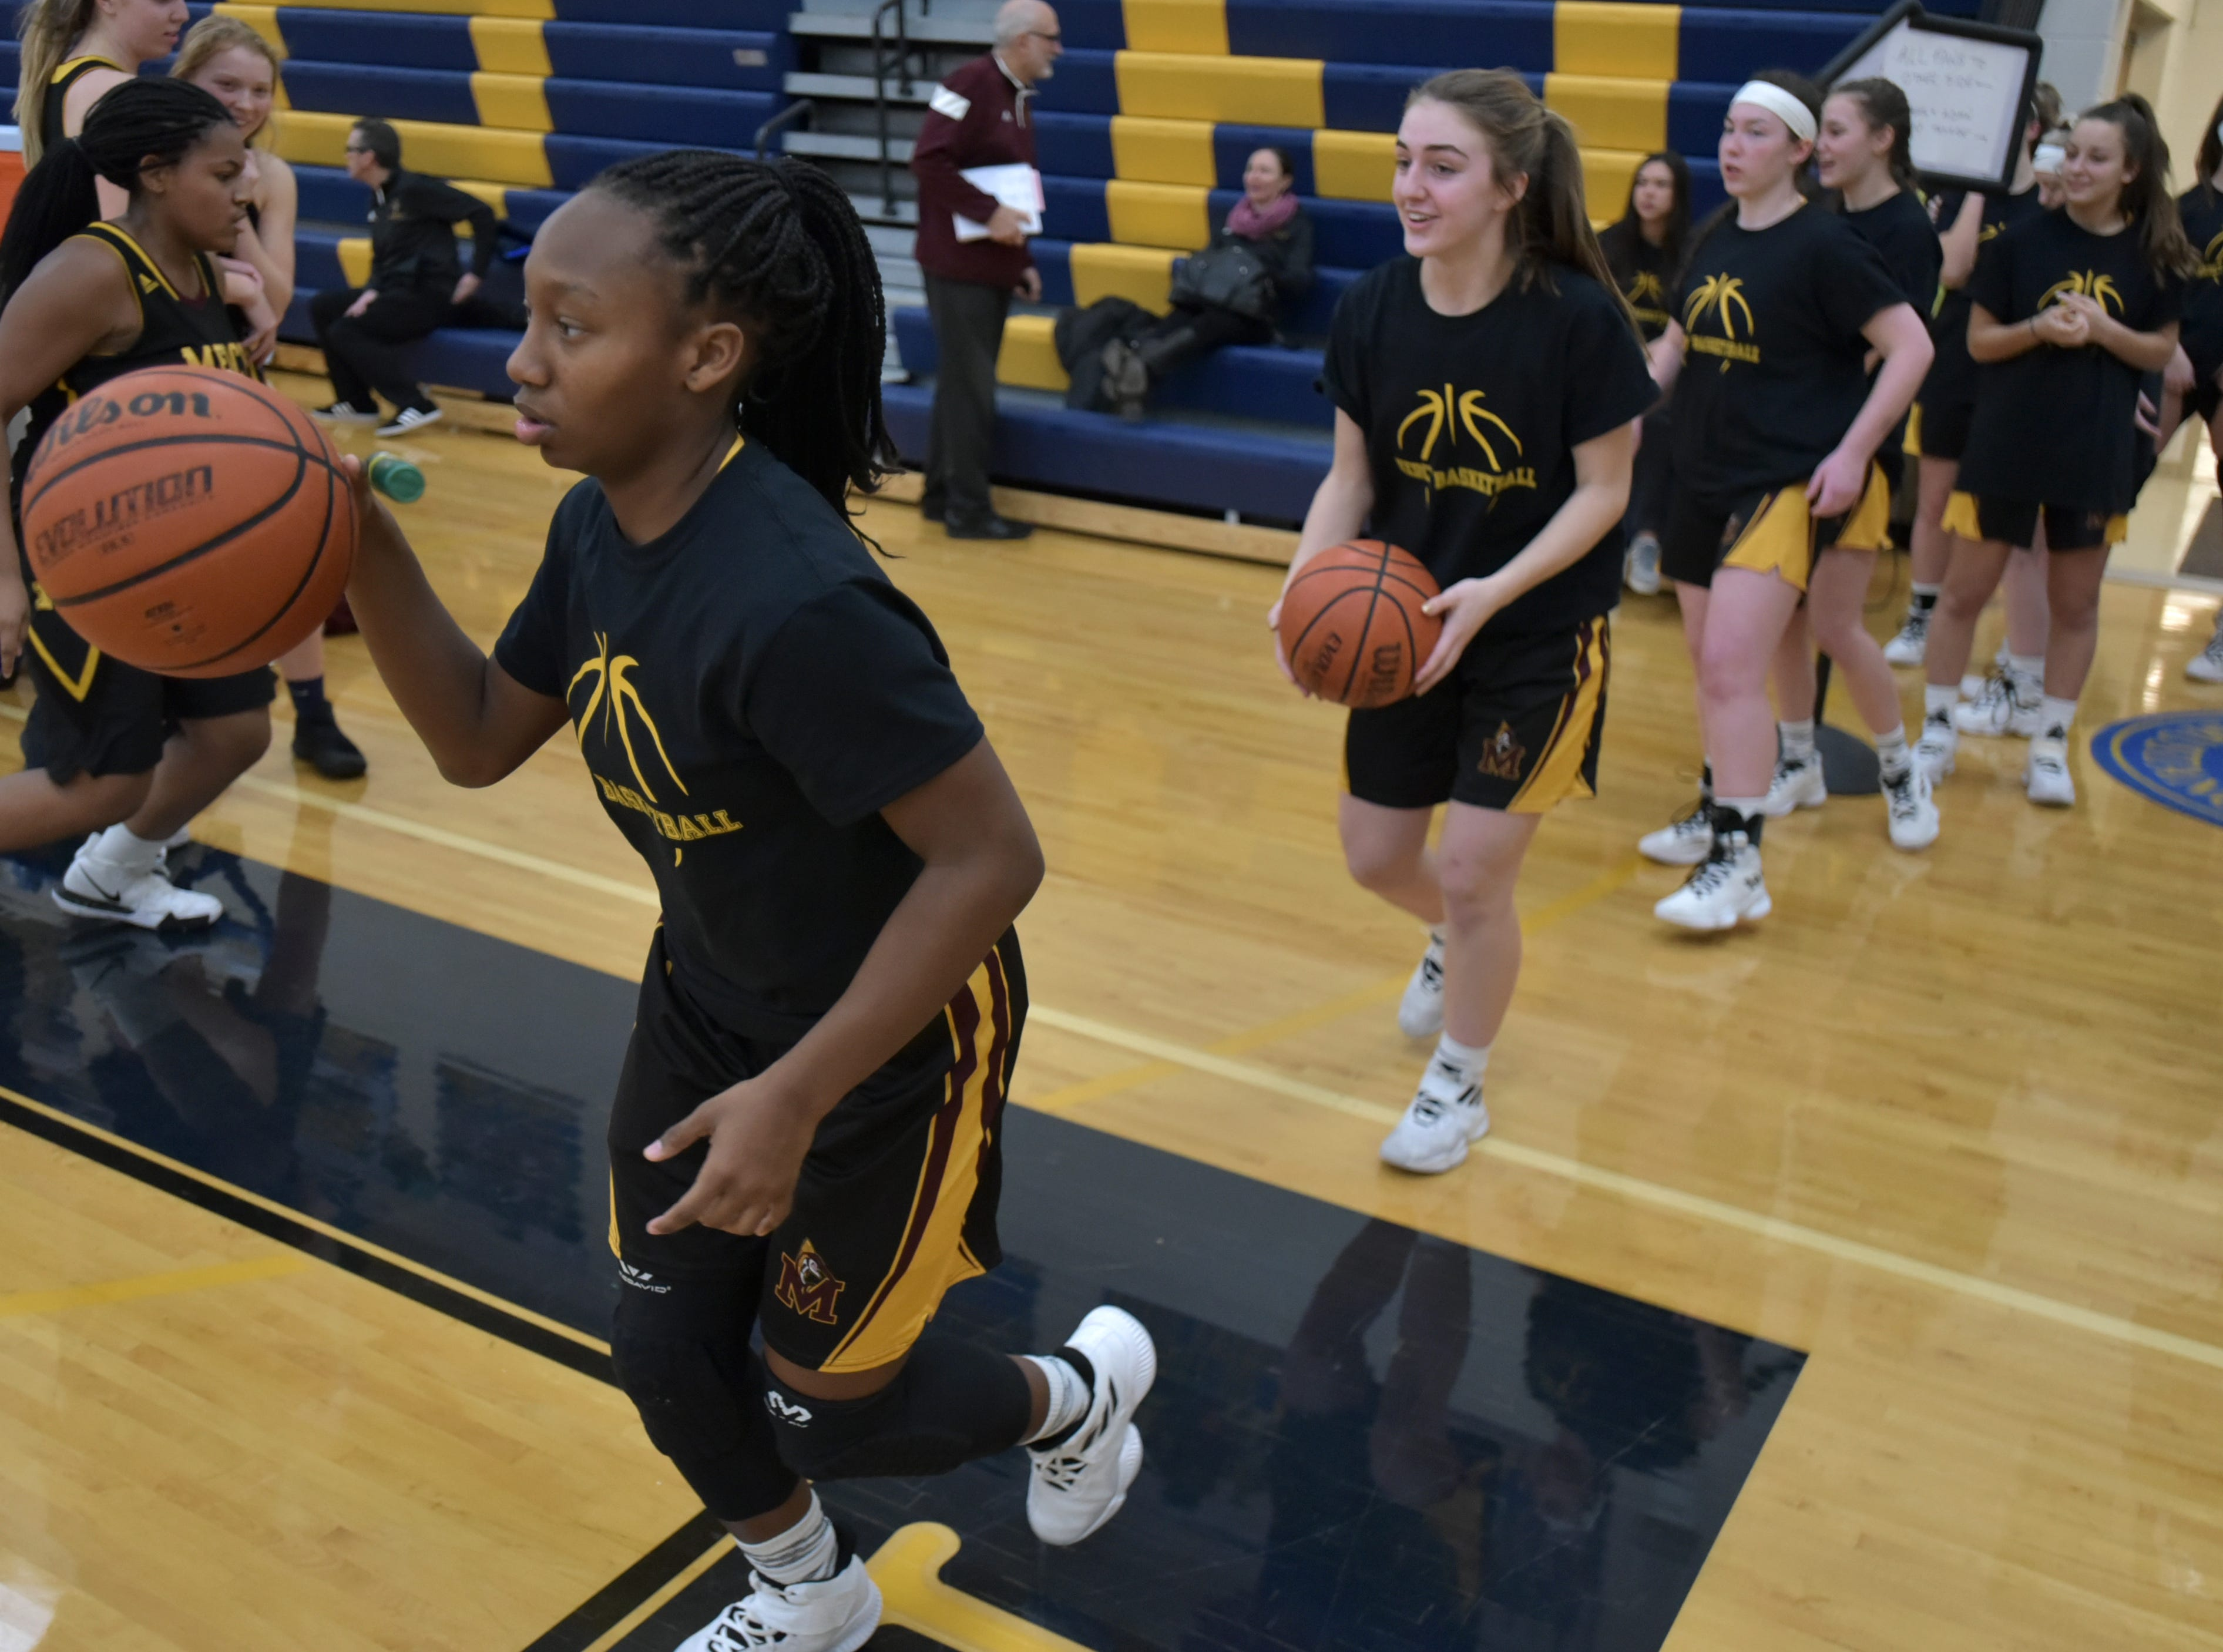 Mercy High player Daniela Piccirilli leads her teammates out on to the floor on Jan. 19.